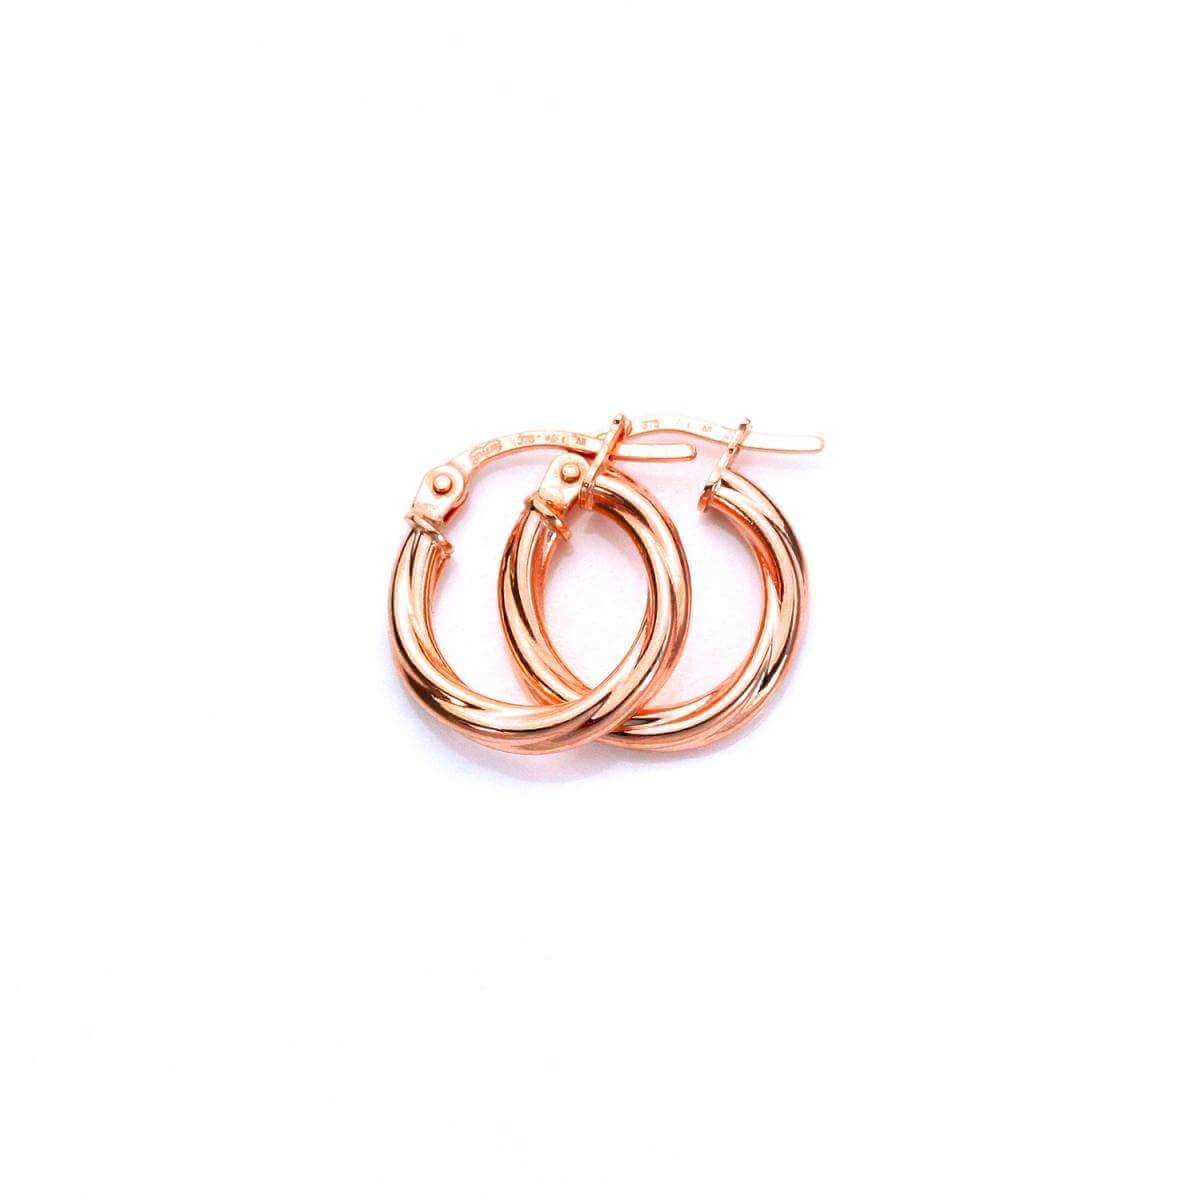 9ct Rose Gold 10mm Twisted Sleeper Hoop Earrings